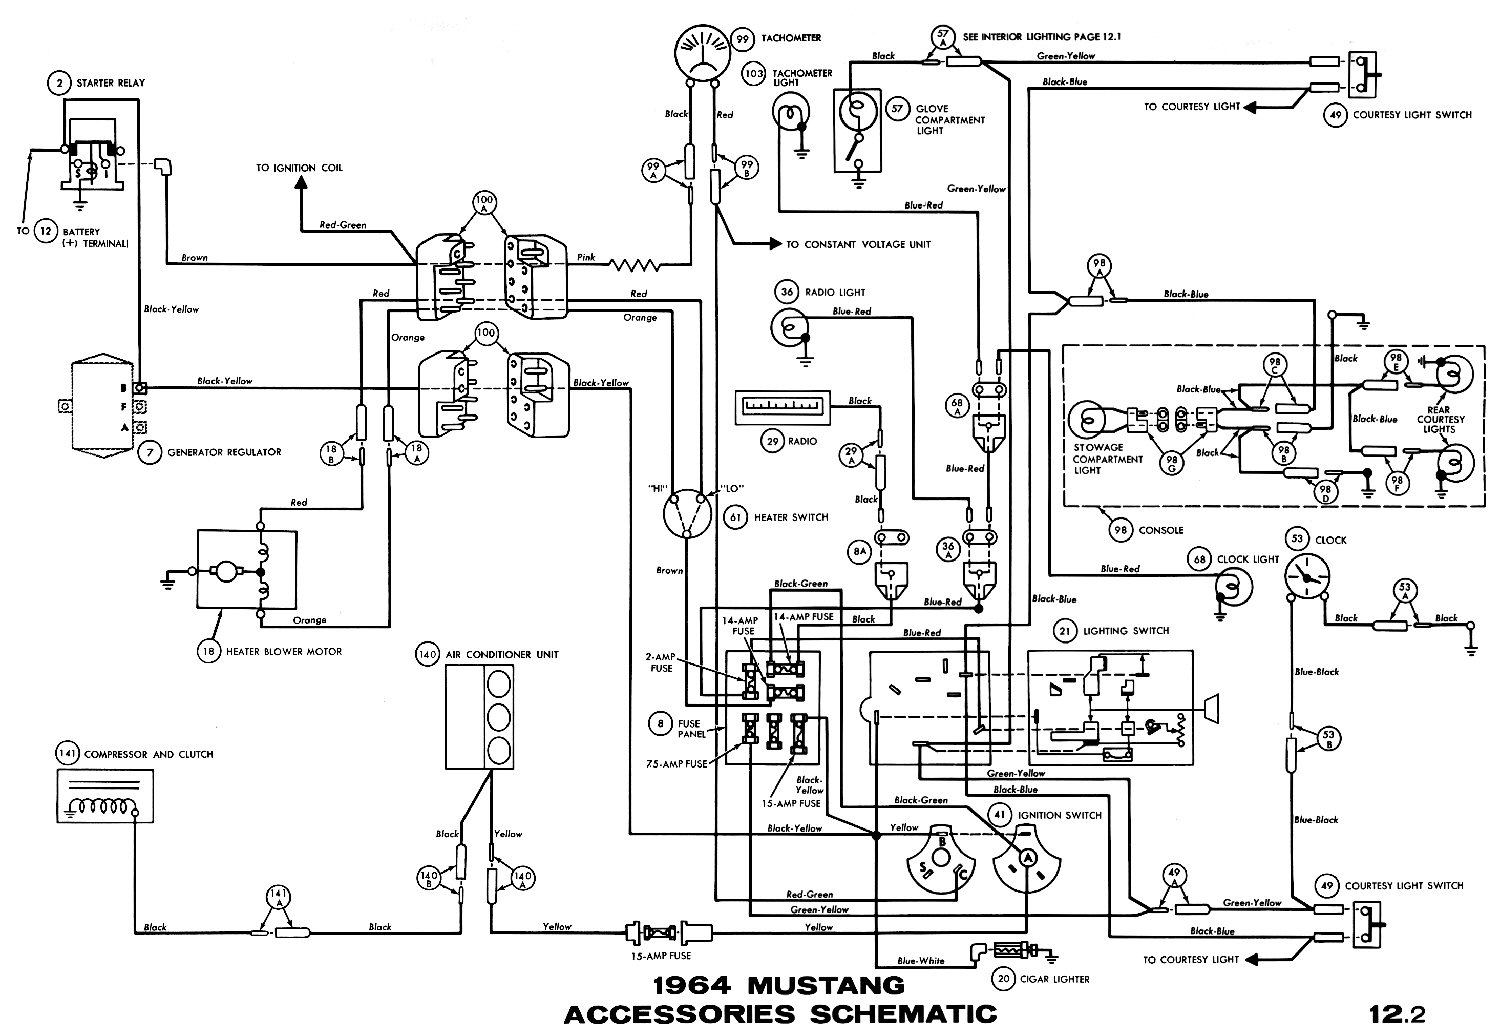 1964 1 2 mustang fuse box diagram wiring diagram third level1964 mustang fuse diagram wiring diagram todays 86 mustang fuse diagram 1964 1 2 mustang fuse box diagram